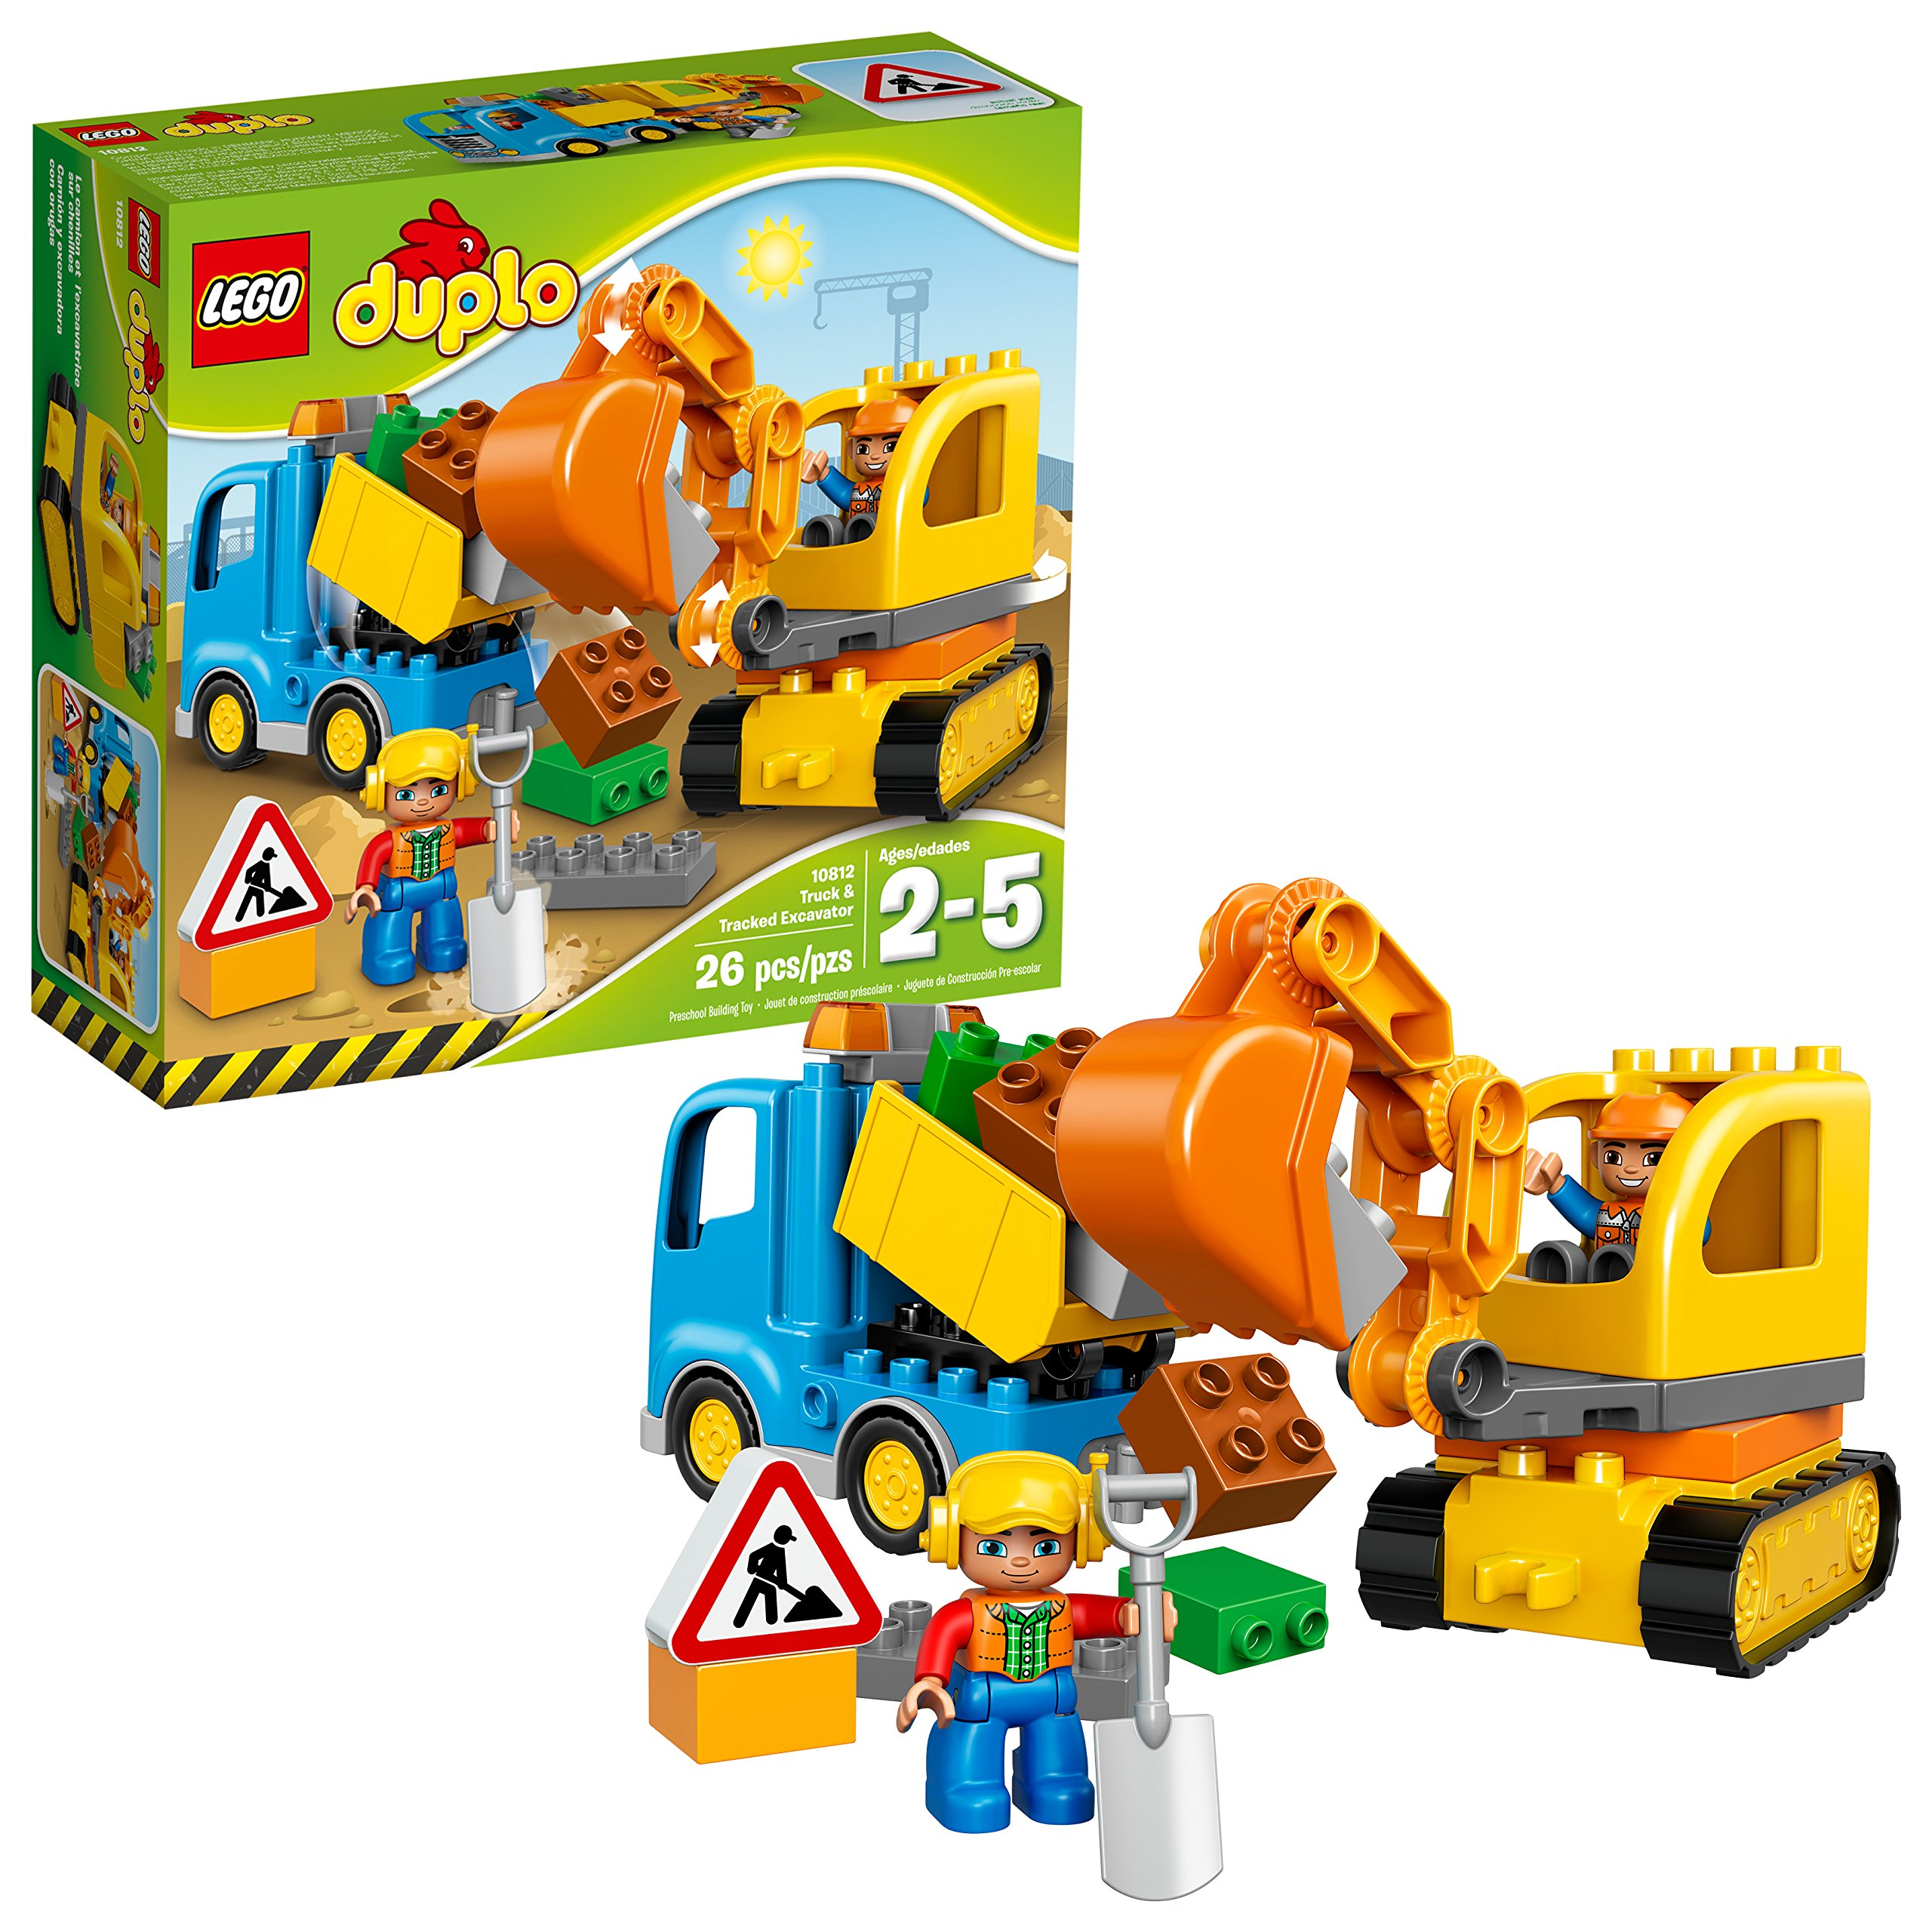 Duplo Truckamp; Tracked Duplo Lego Town Tracked Duplo Town Truckamp; Lego Lego 3jq4RL5A